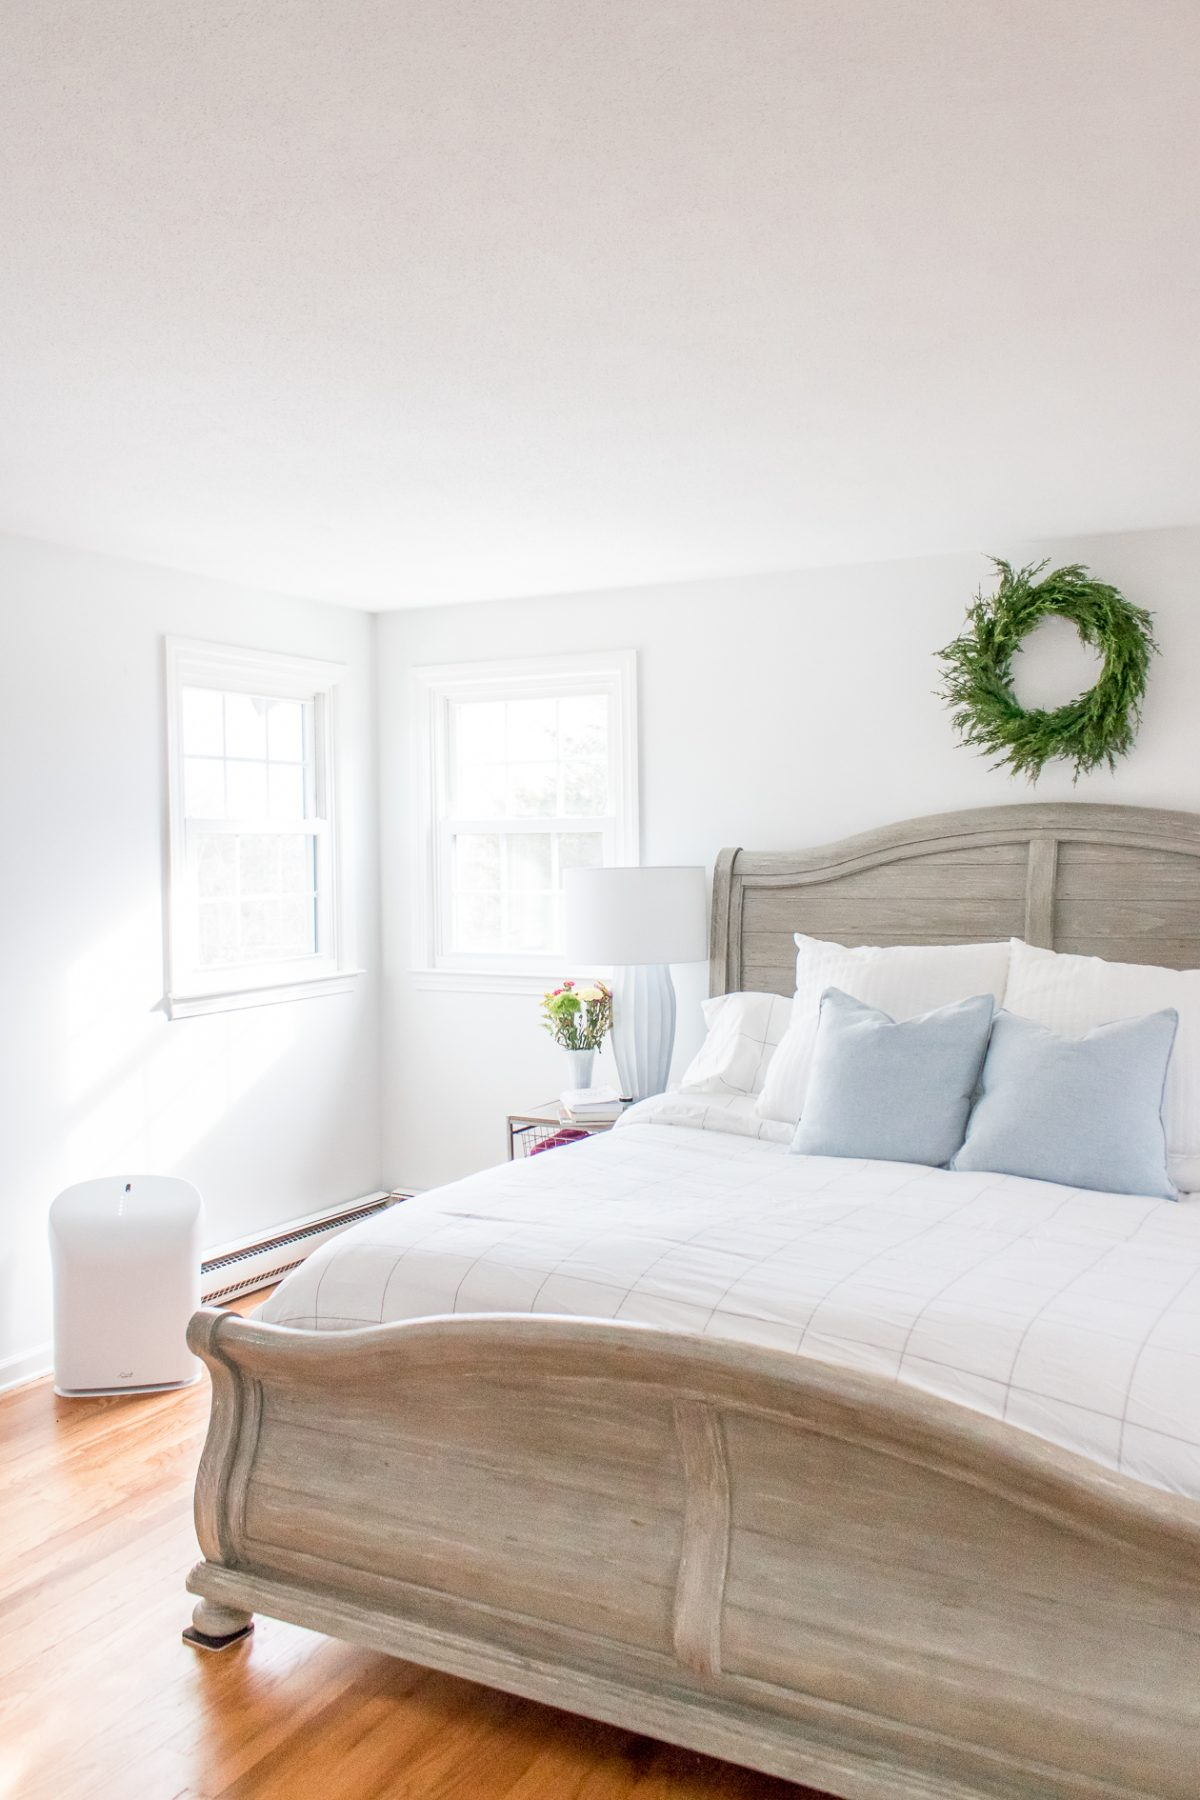 Bright White Bedroom with Gray Headboard and Green Boxwood Wreath on the Wall above the Bed and Rabbit Air Purifier near the wall in the room